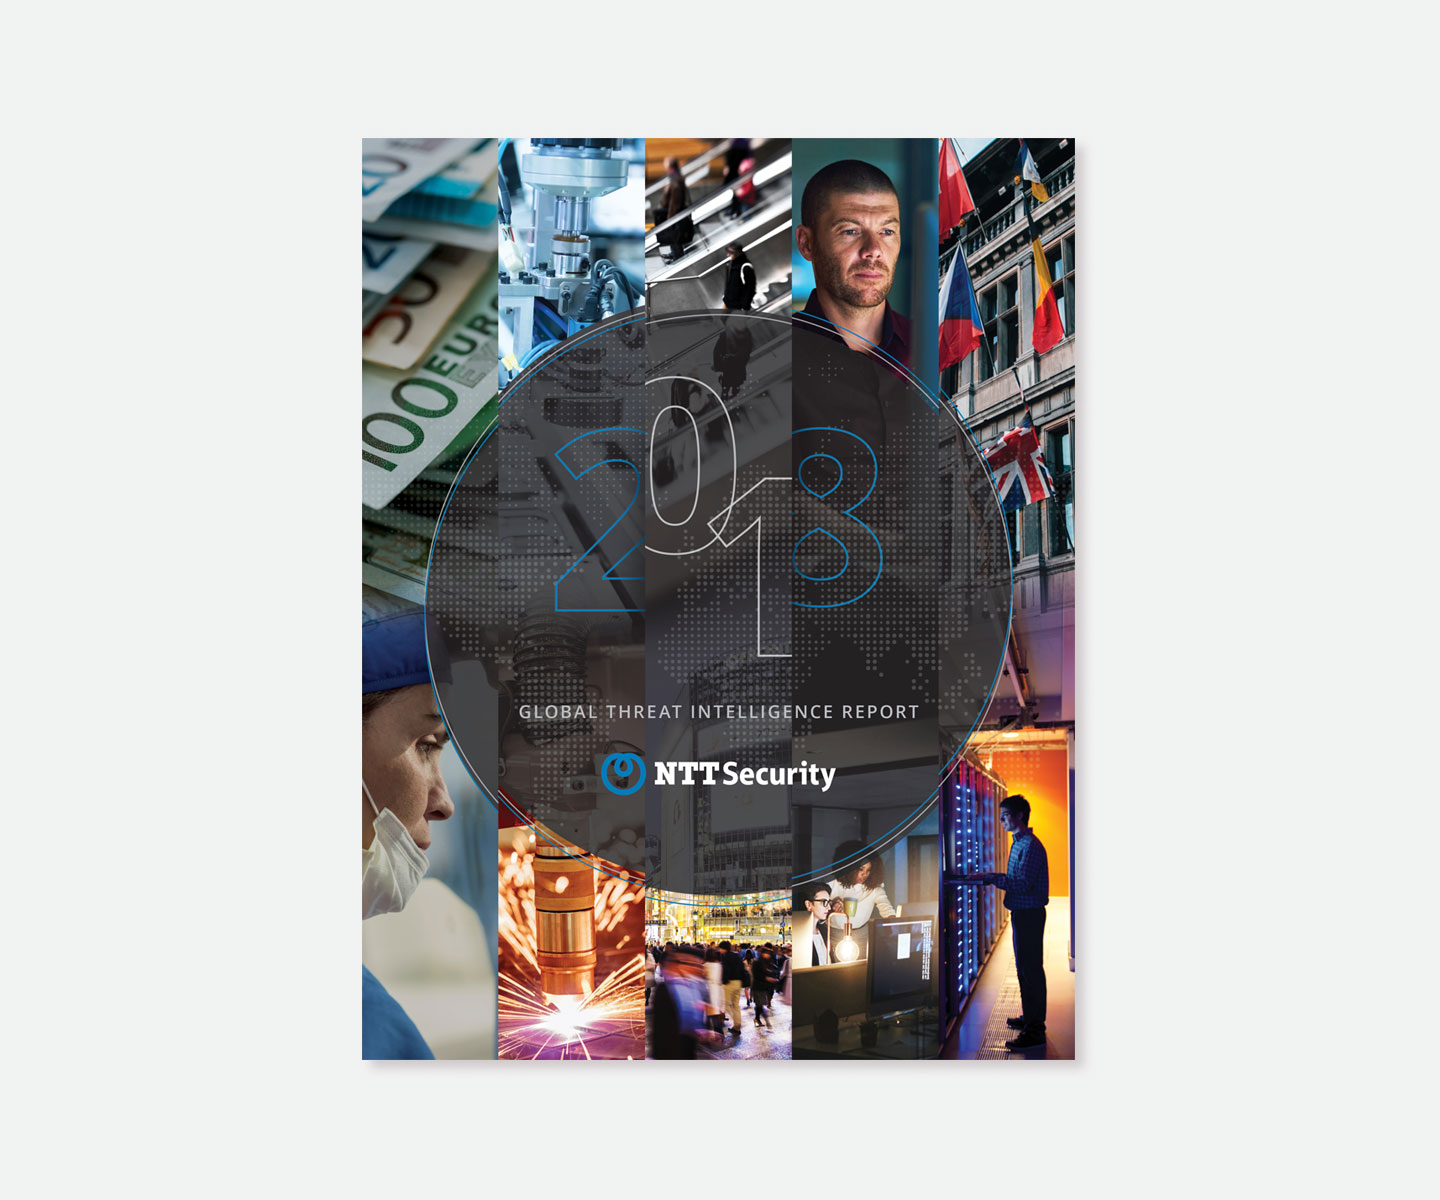 NTT Security Global Threat Intelligence Report Cover